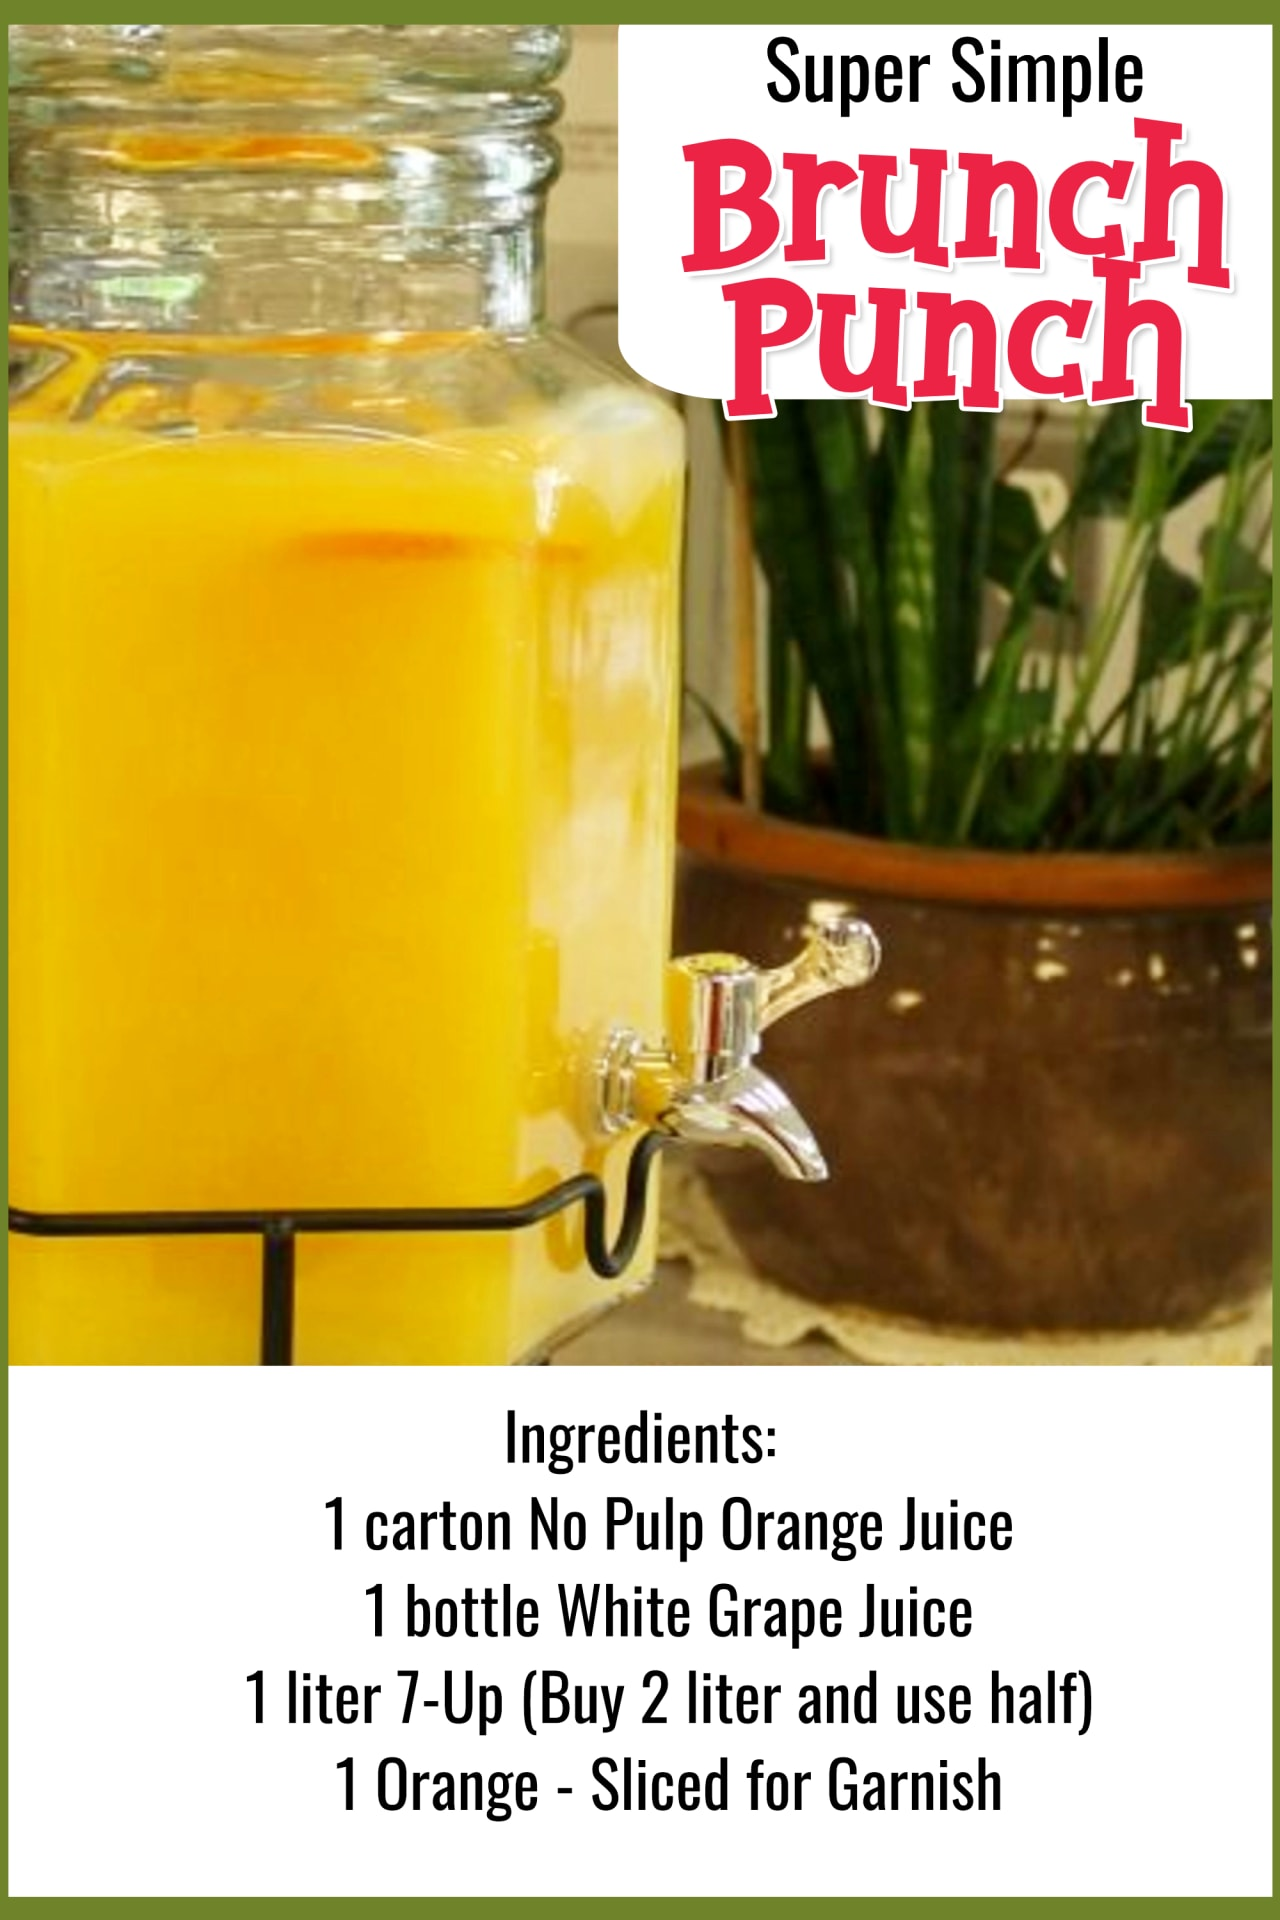 Easy Brunch Punch Recipe for a crowd - Easy Punch Recipes for a Crowd and Easy Party Drinks Ideas - Cranberry Vodka Punch, Pineapple Orange Juice Alcoholic Drinks, Punch for 50 and Simple Punch Recipes for a Crowd, Party, Brunch, Cookout or Bridal Shower - non-alcoholic punch recipes and simple alcoholic punch recipes, non-alcoholic holiday punch, easy fruit punch recipes, easy punch recipes with sprite and pineapple juice, jungle juice recipe with fruit